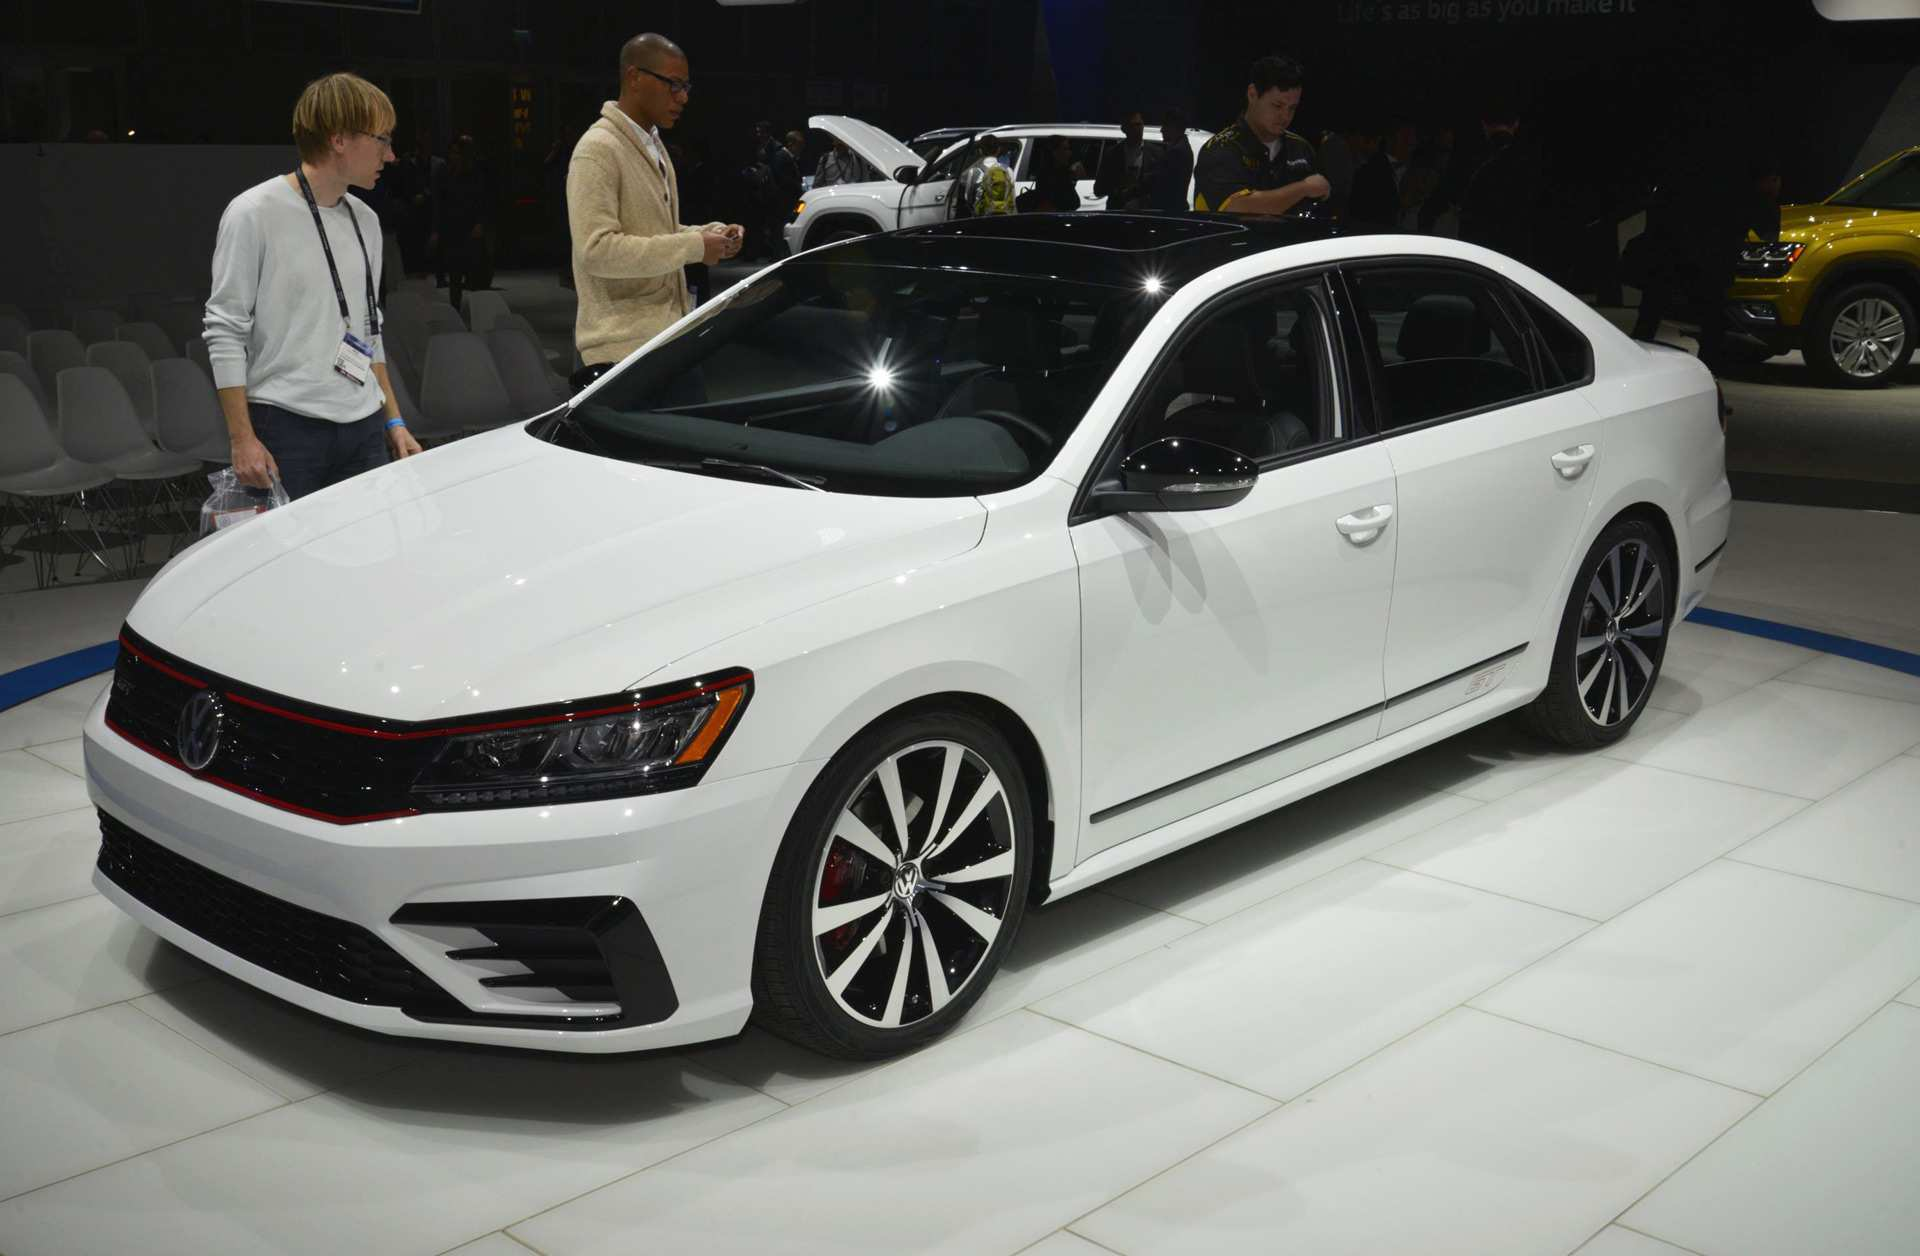 71 All New 2019 Vw Passat Gt Redesign and Concept for 2019 Vw Passat Gt